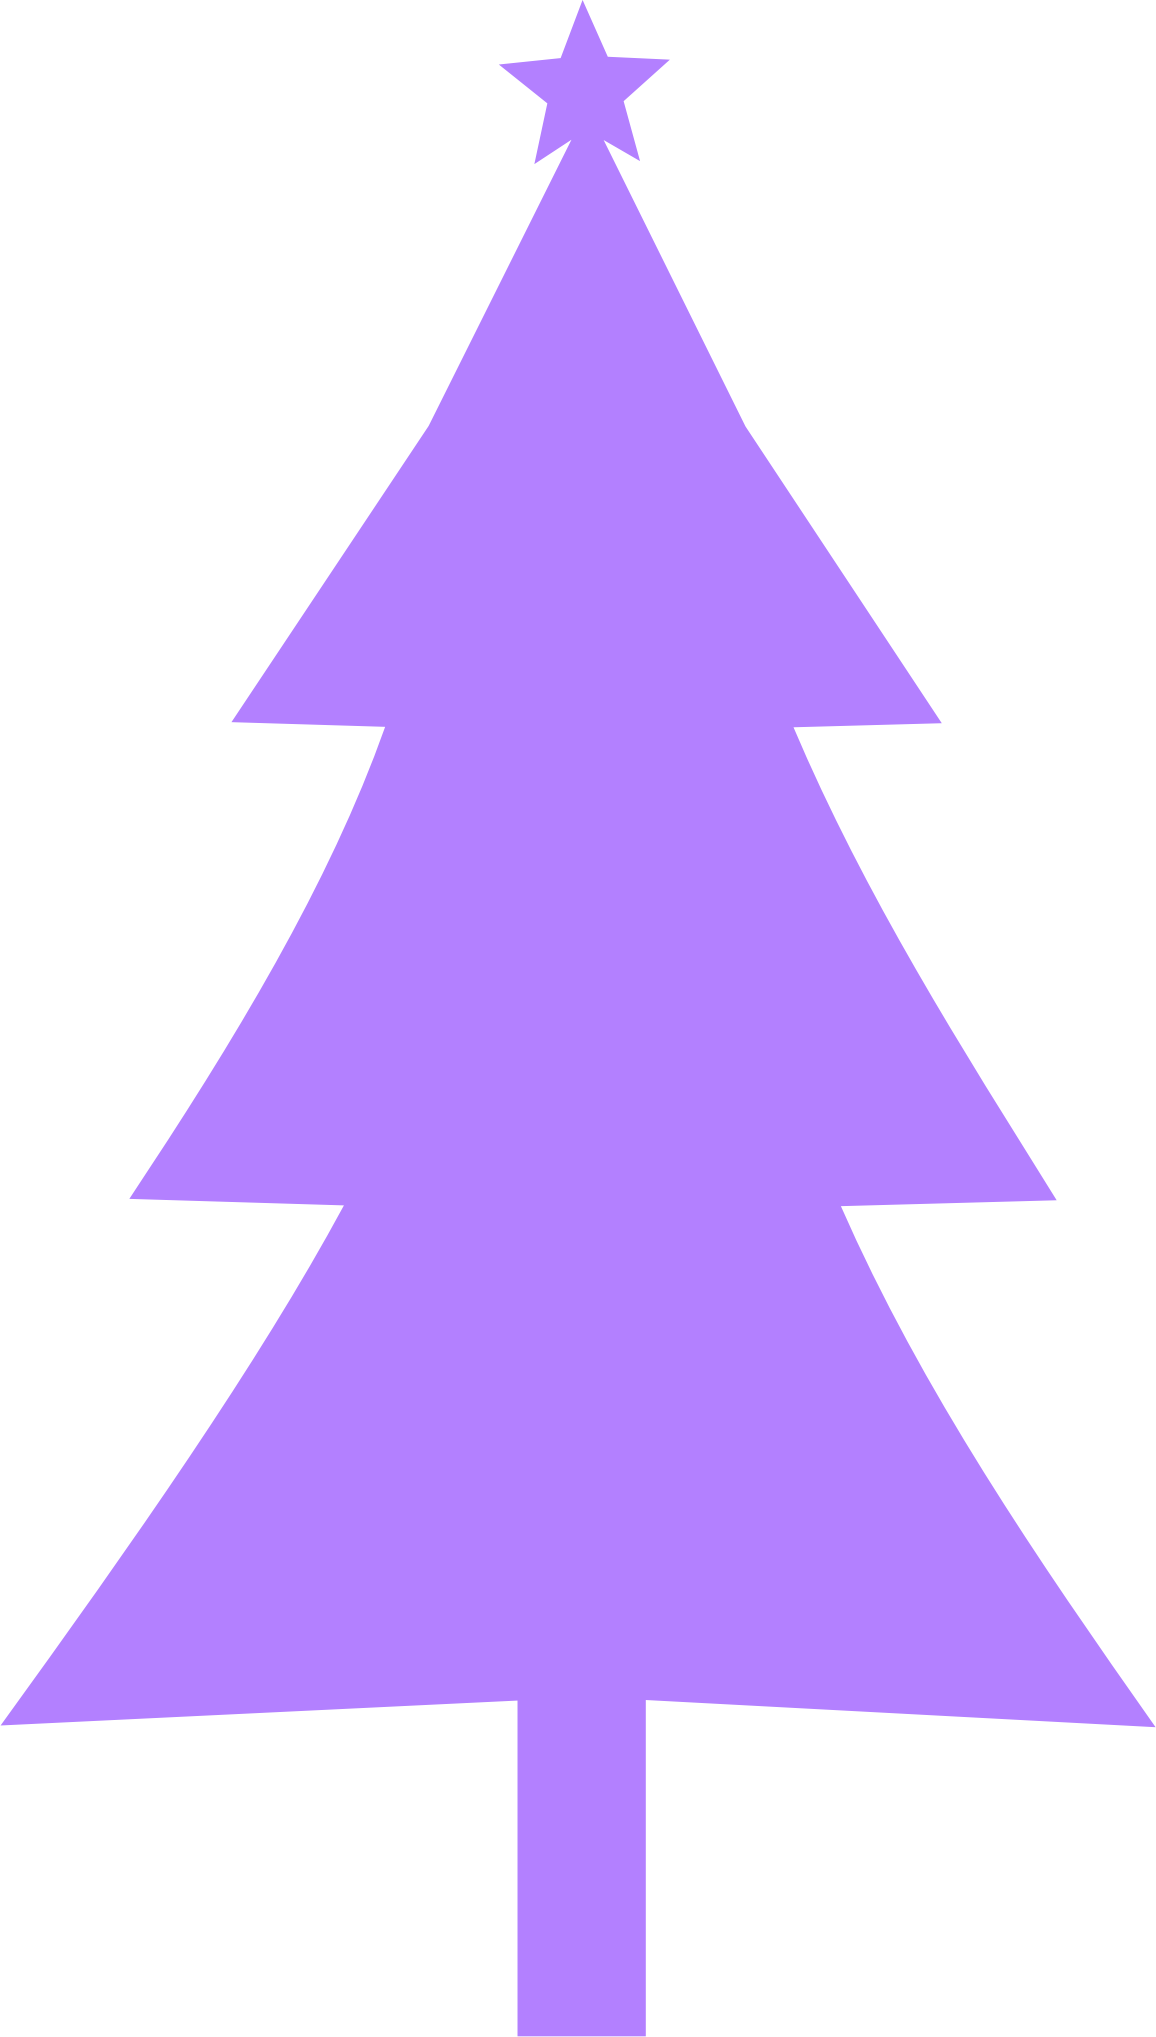 Purple tree clipart picture freeuse Clipart - Christmas tree Silhouette picture freeuse